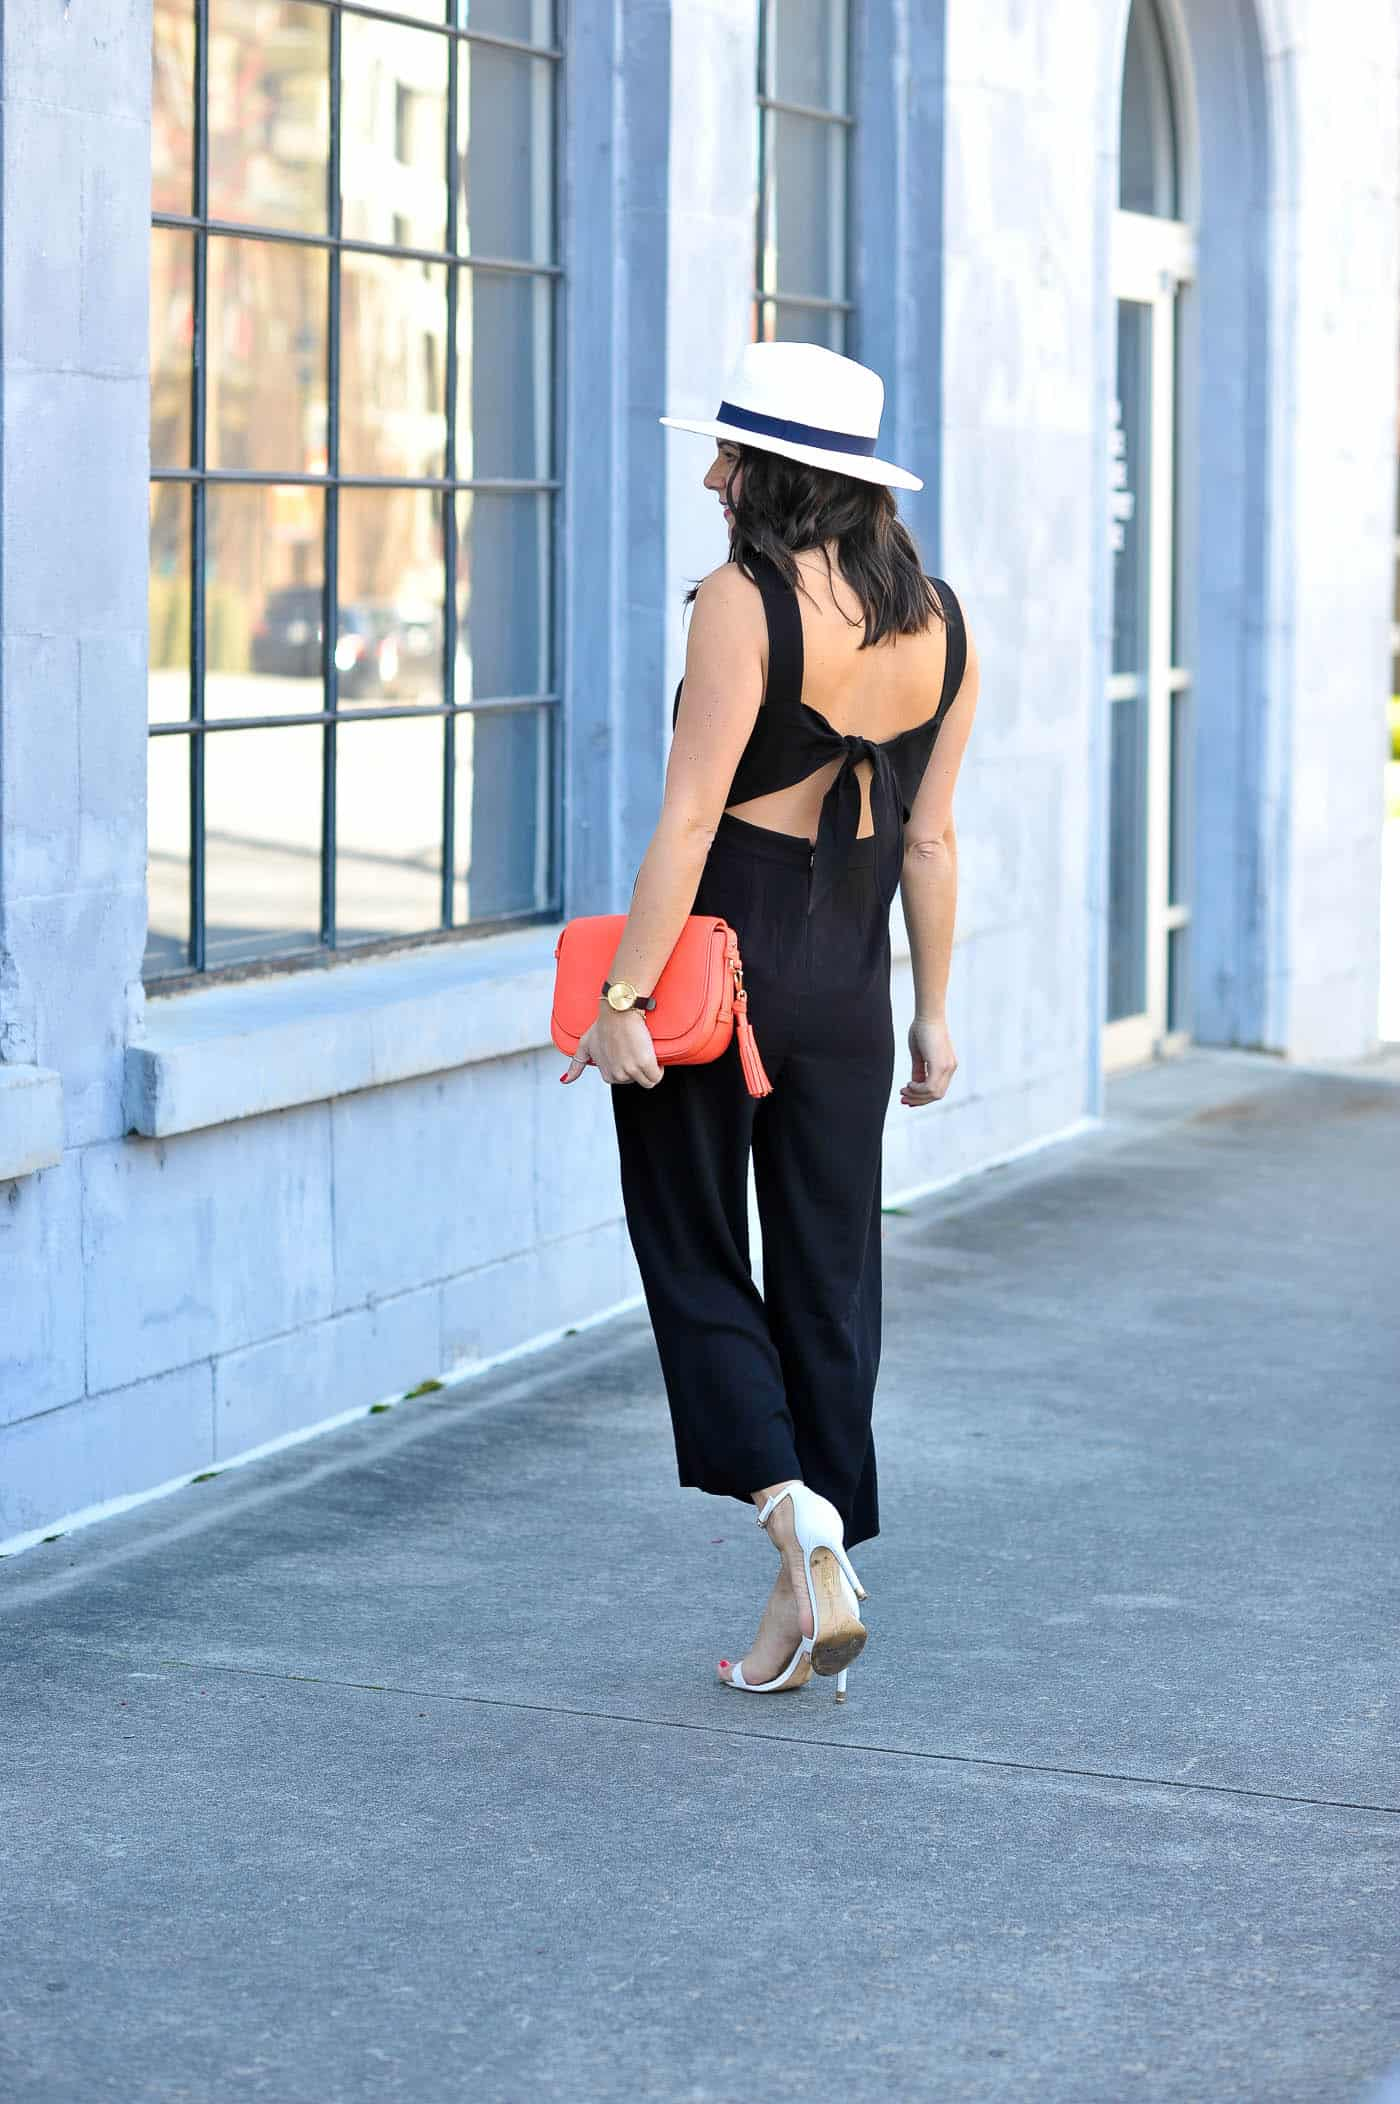 Jessica Camerata styling a black Madewell jumpsuit